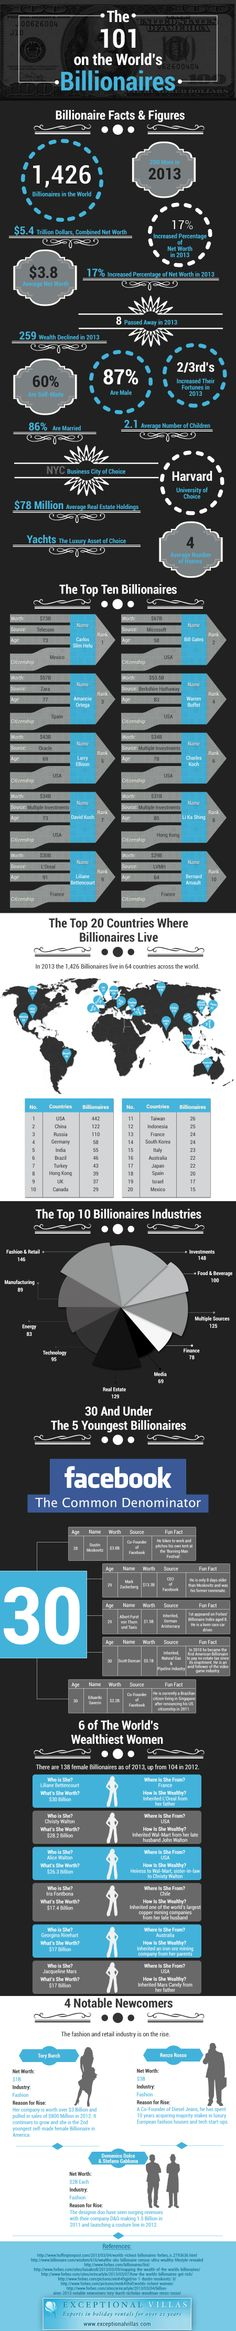 Interesting Facts About The Richest People in The World